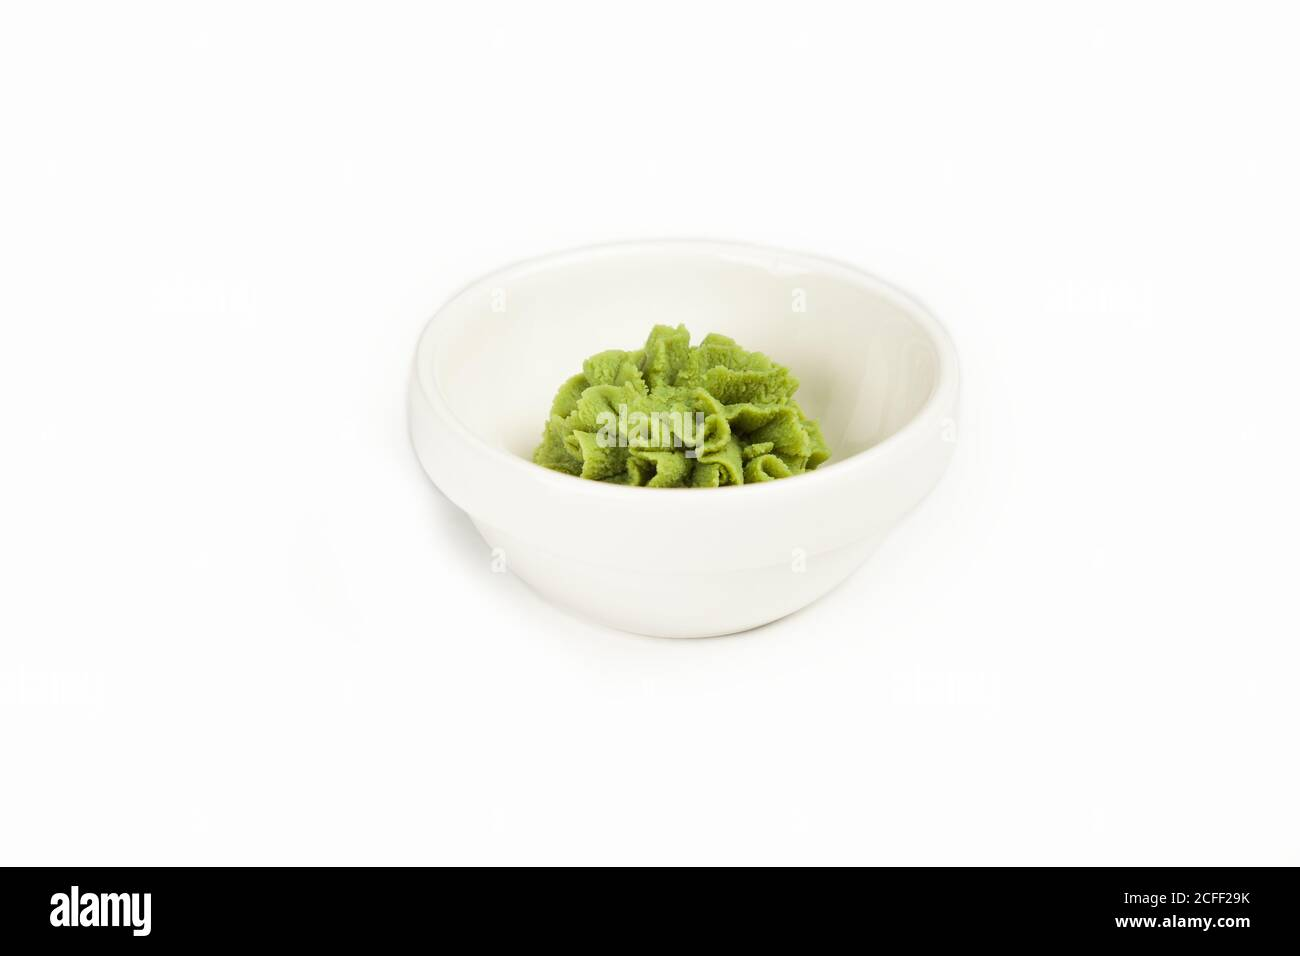 Bowl with wasabi sauce on a white plate. For the restaurant menu. Traditional Chinese classic wasabi seasoning platter. Japanese cuisine horseradish pasta. Stock Photo